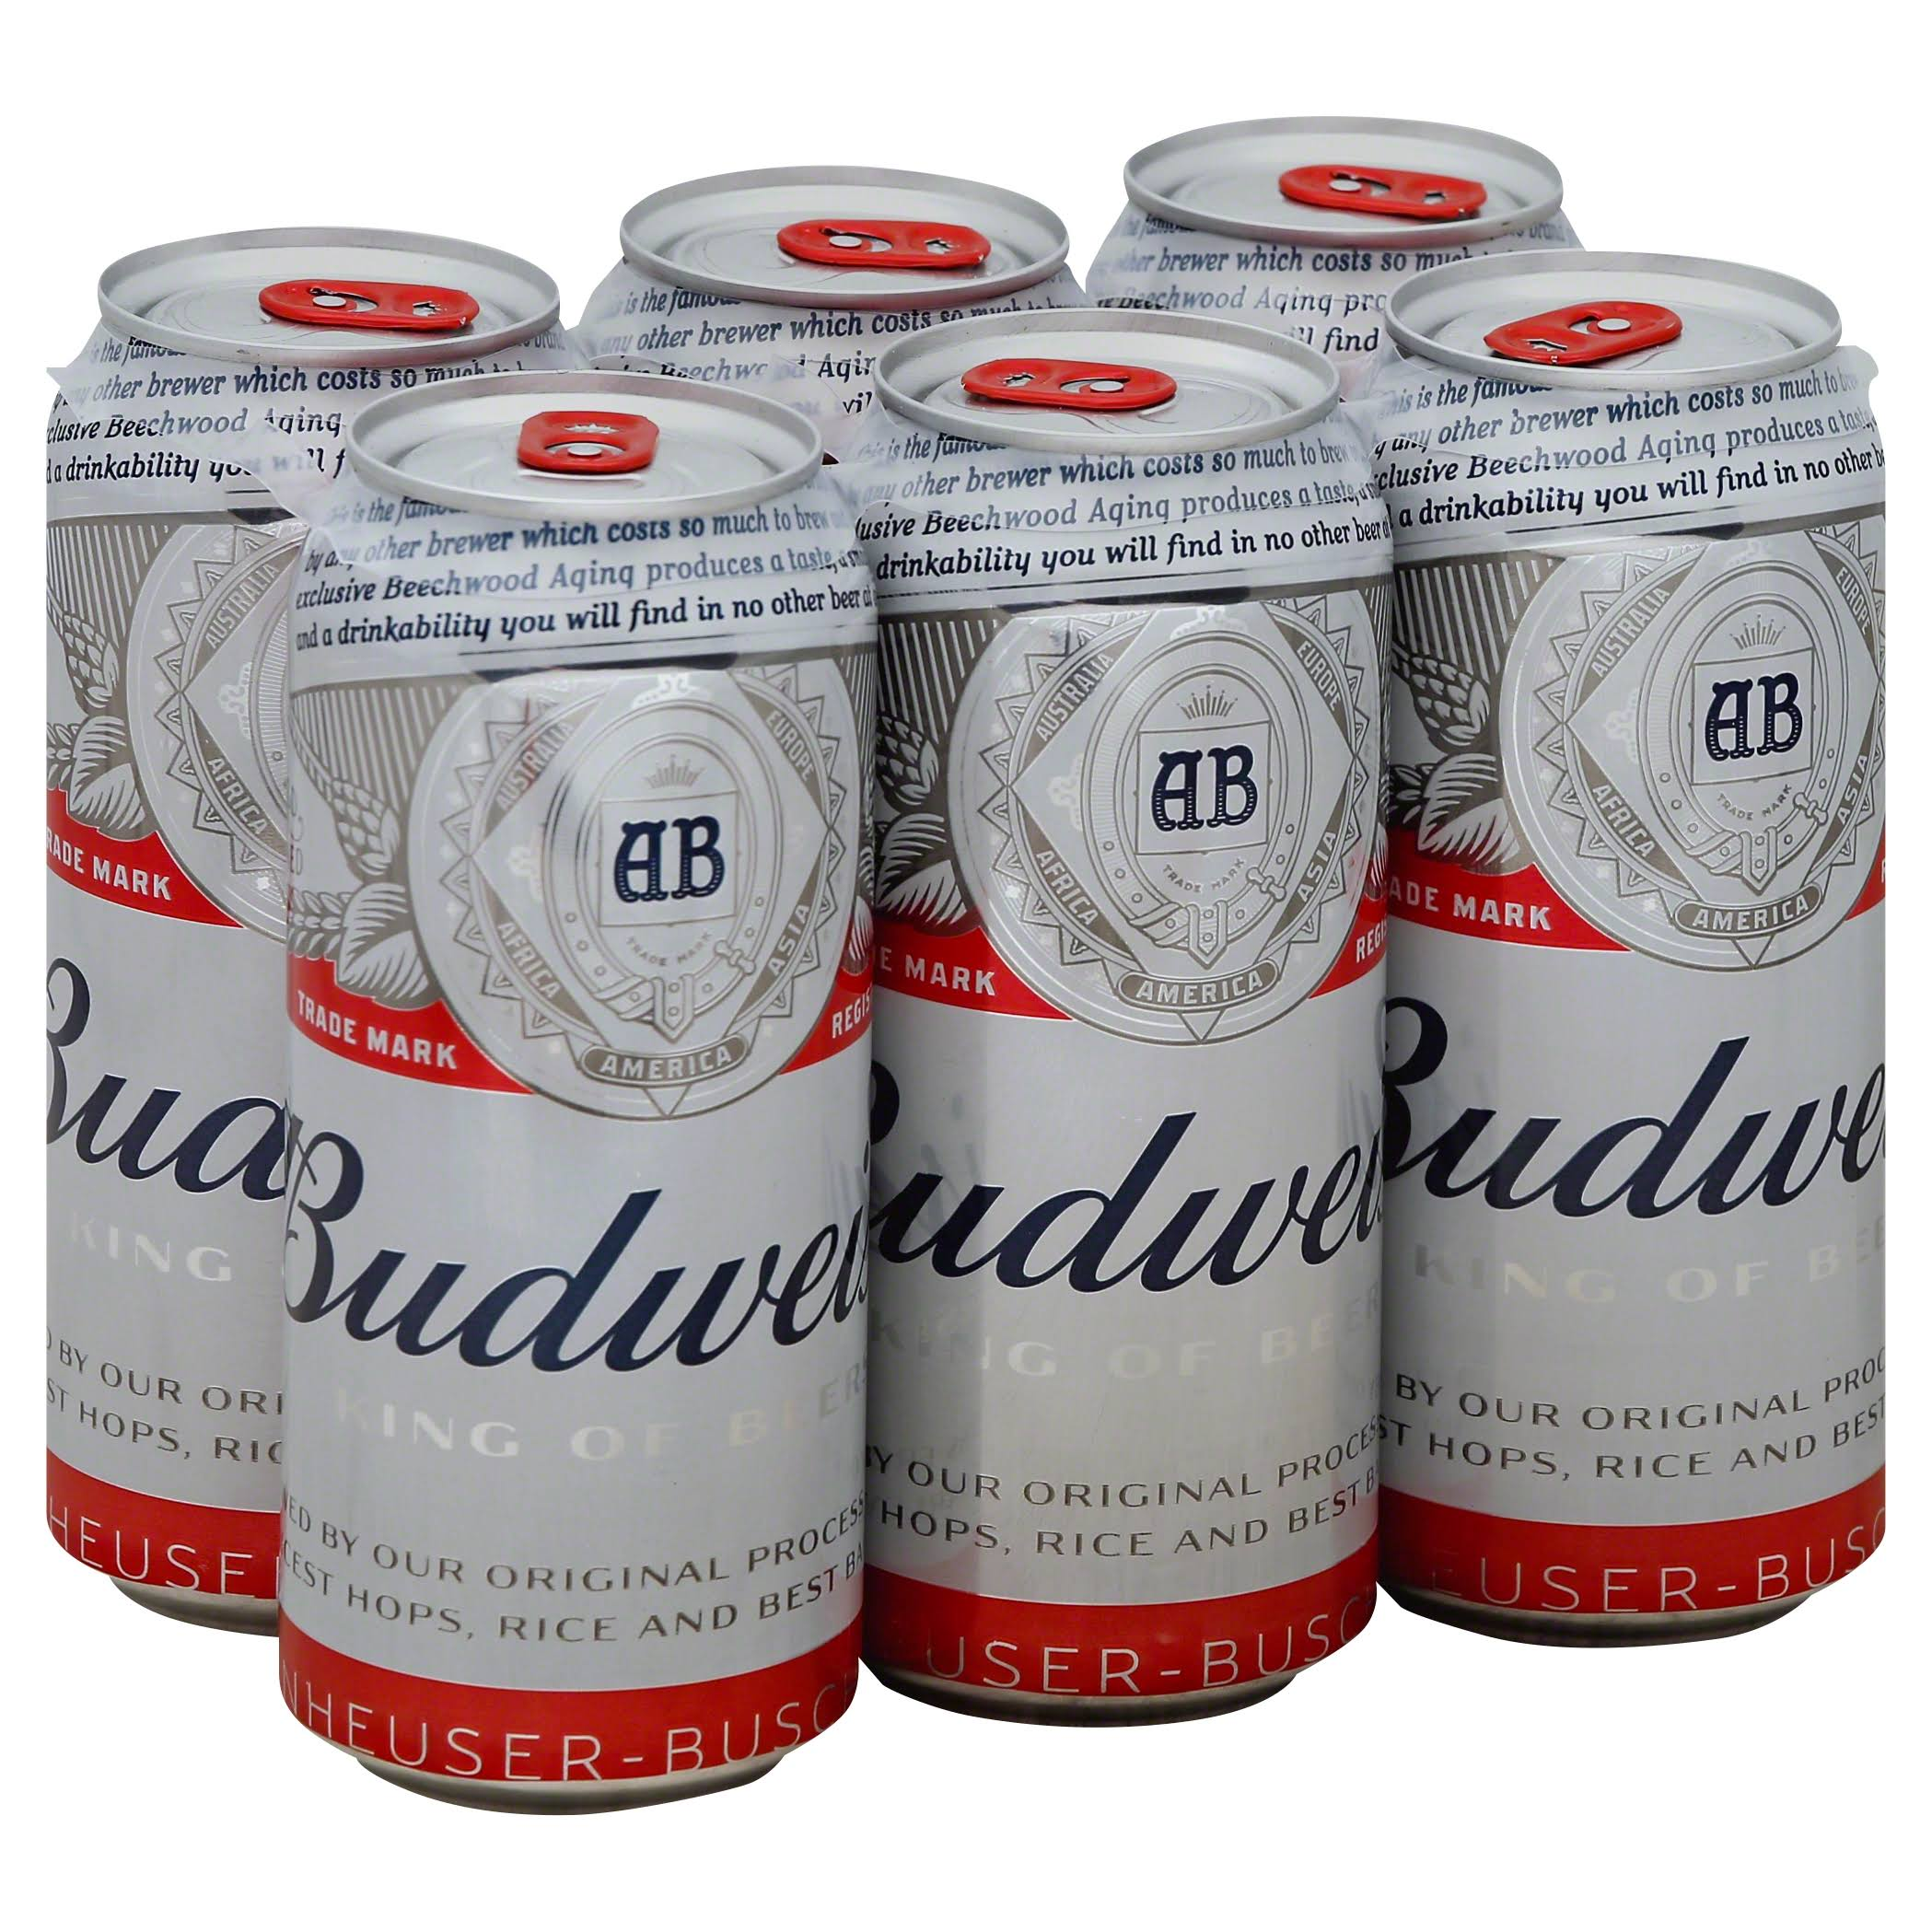 Budweiser Beer - 16 fl oz, 6 pack